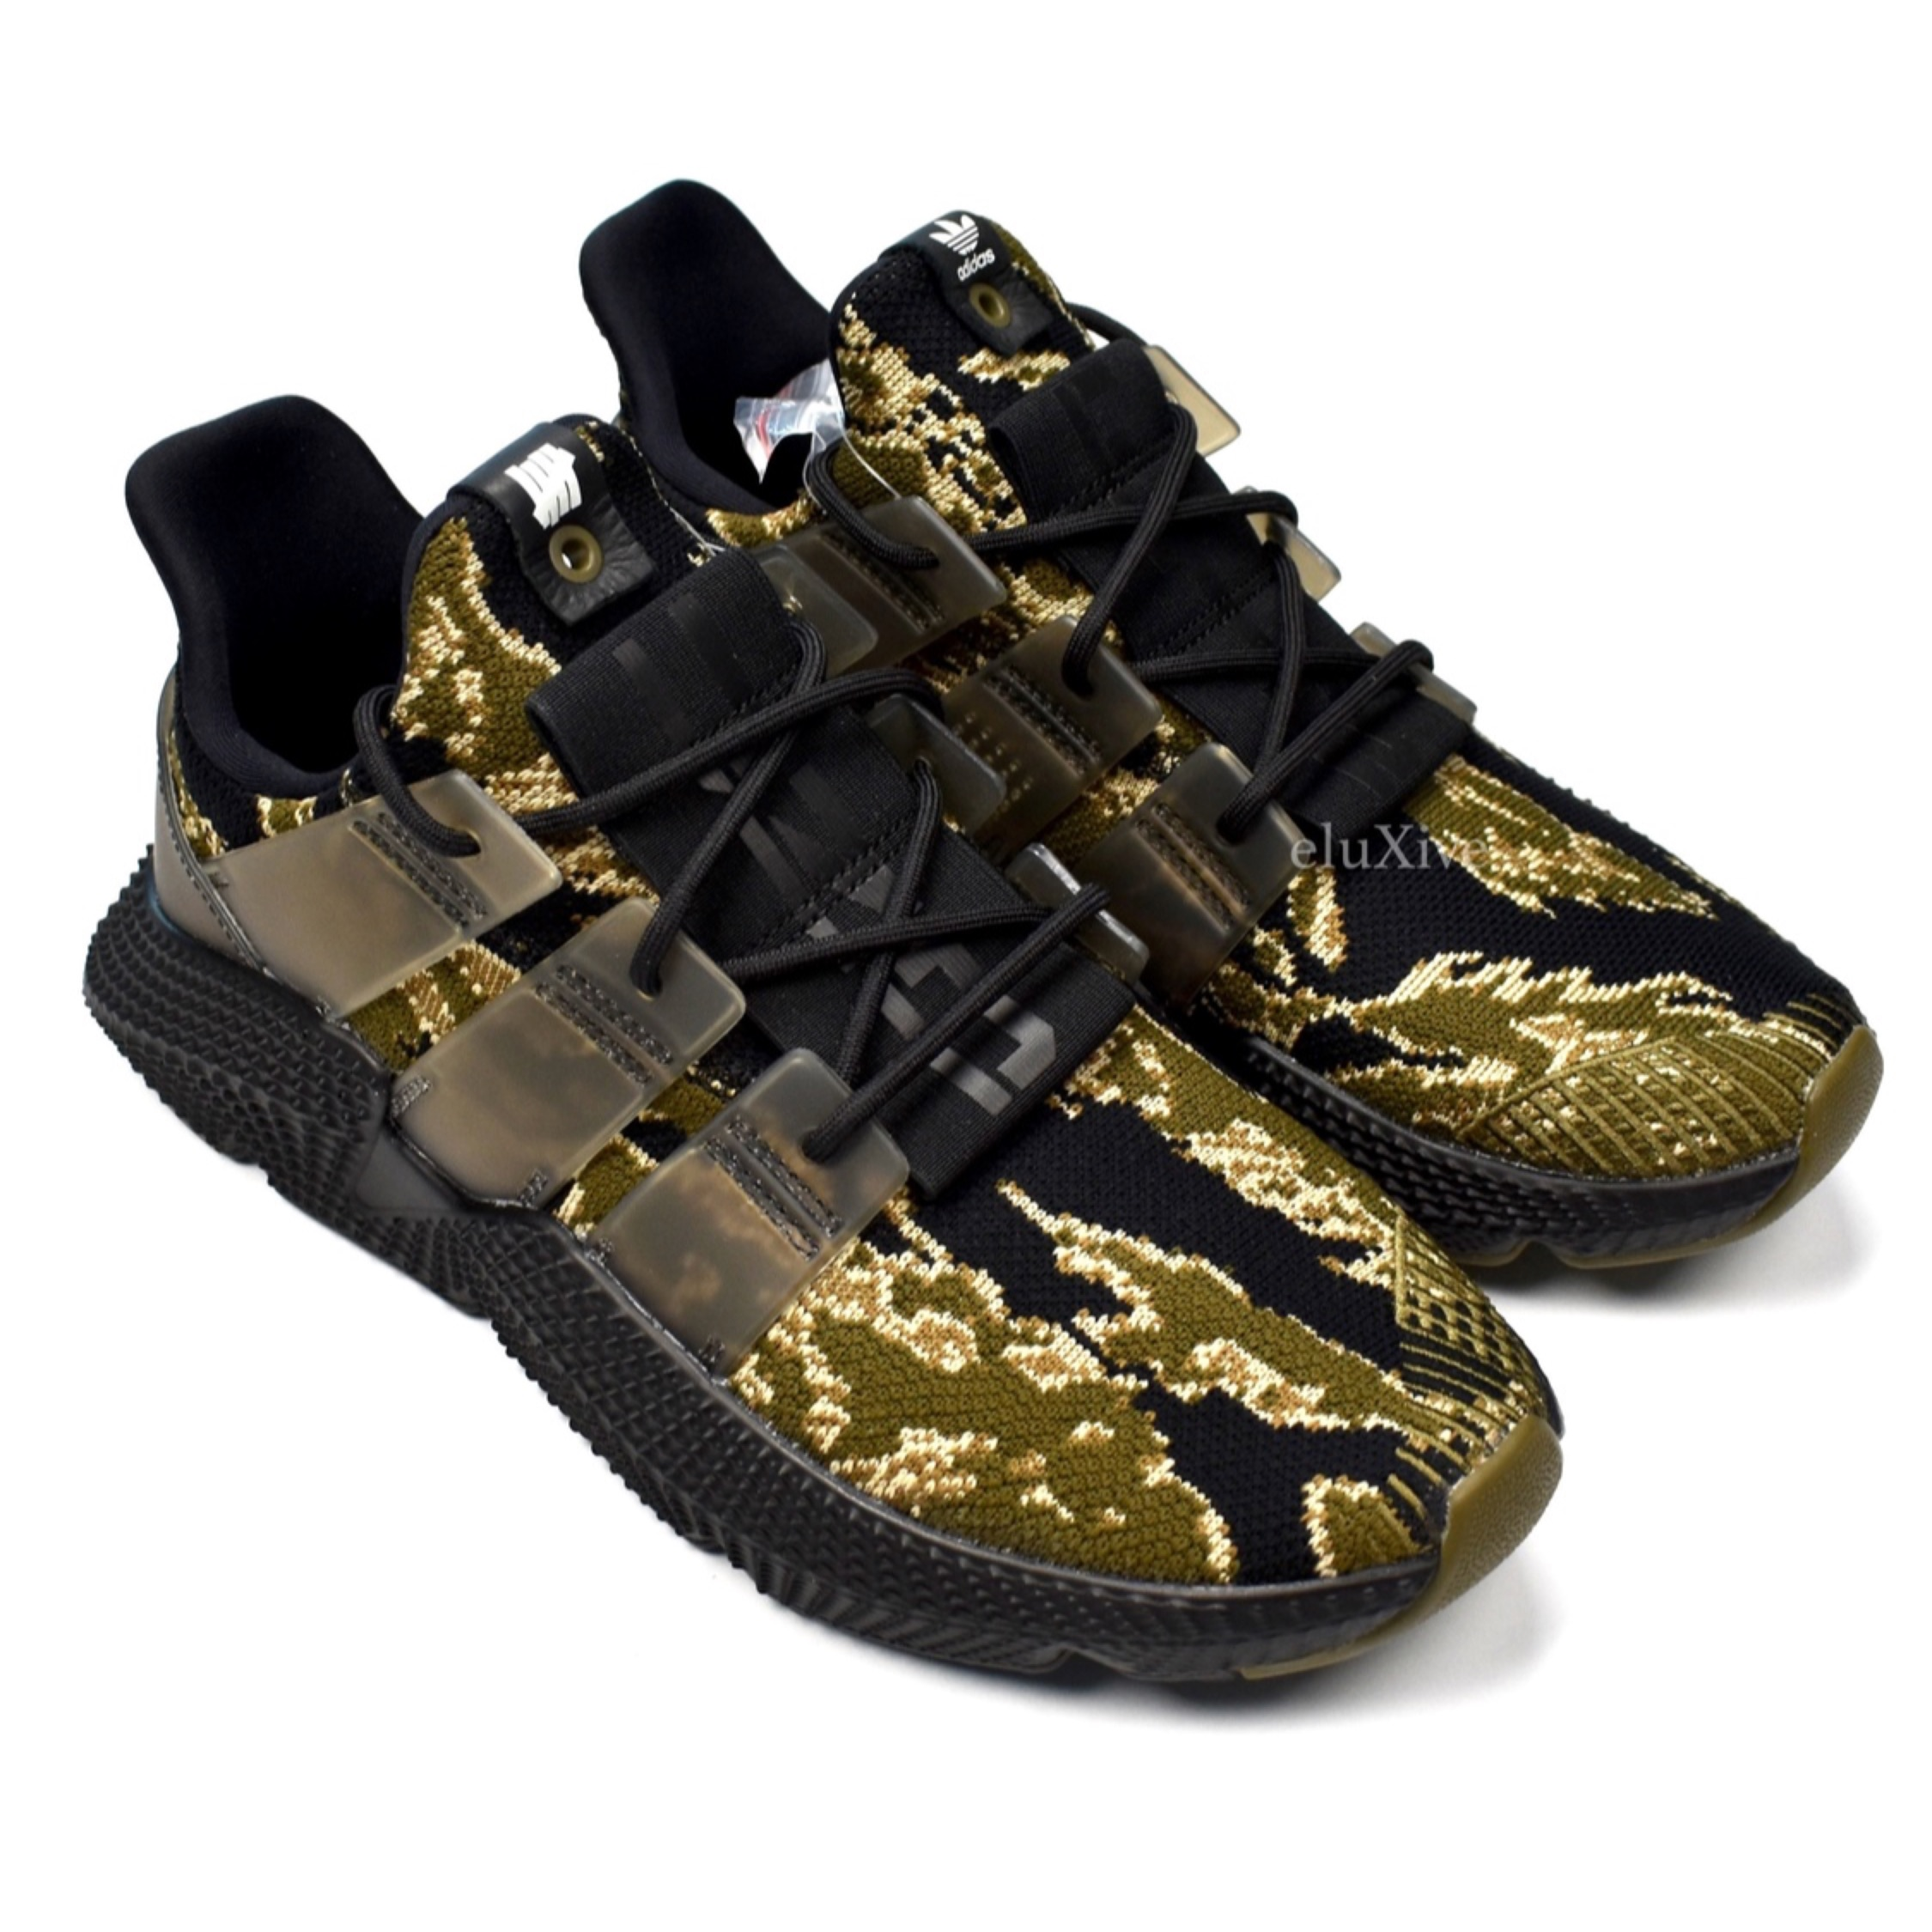 newest c5397 ede9b Adidas Prophere X Undefeated Tiger Camo New 9